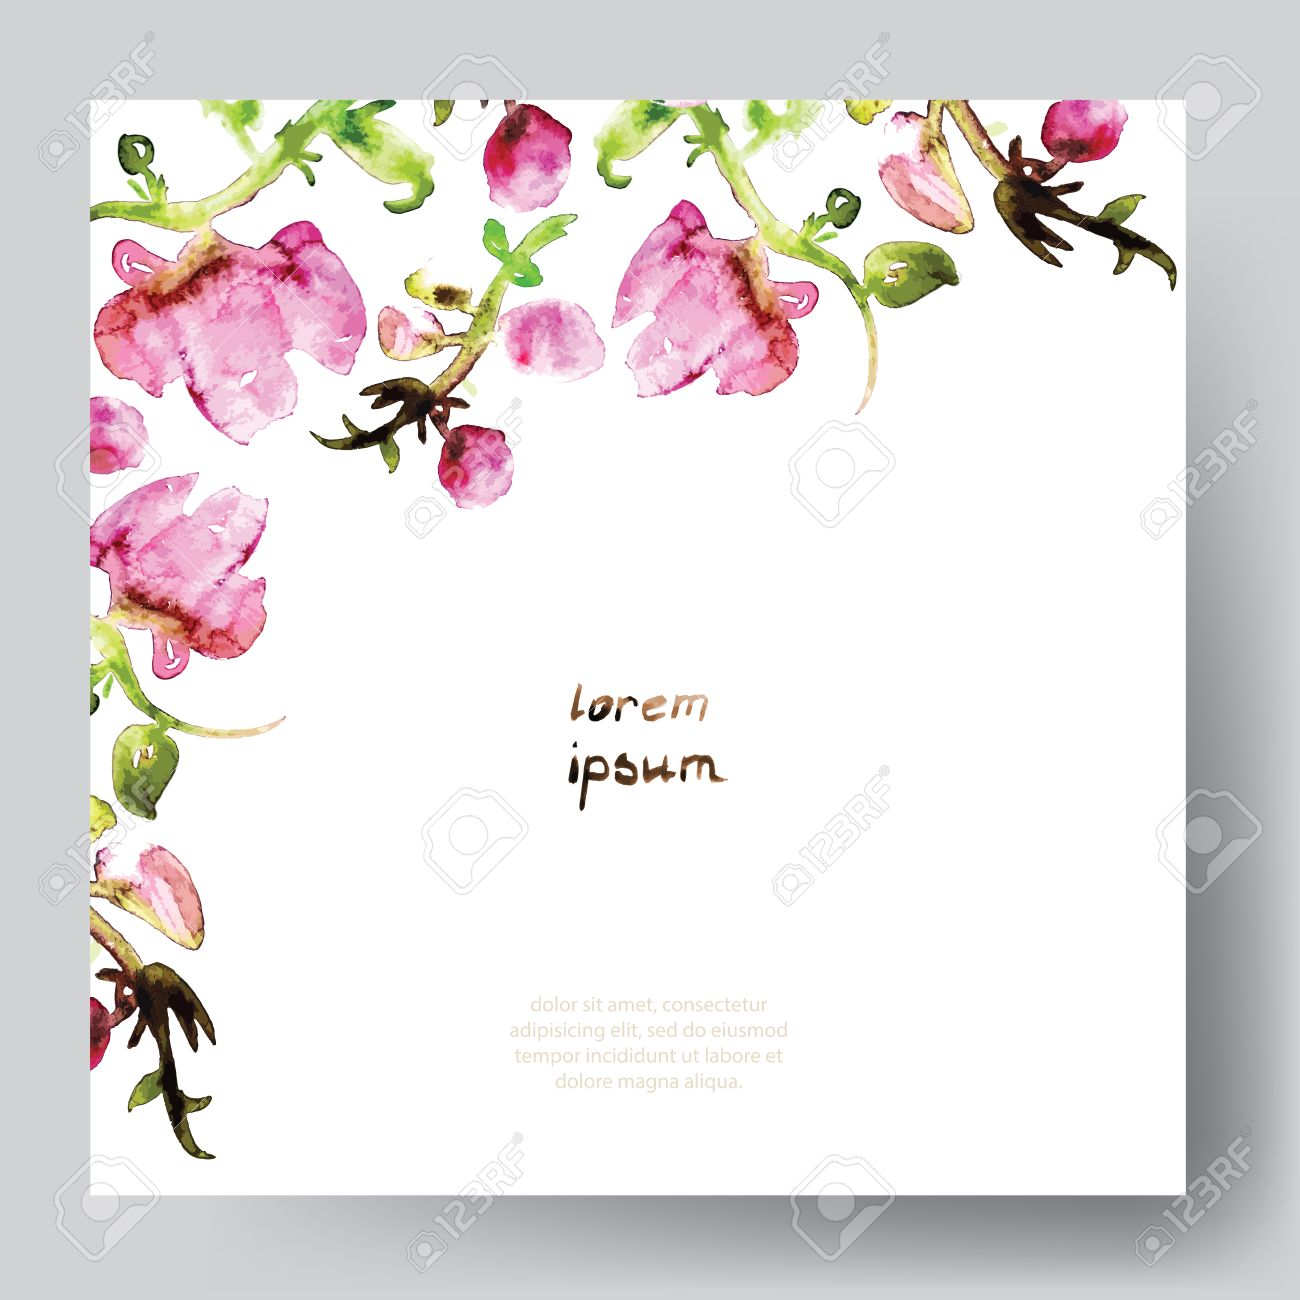 Watercolor vector template with pink flowers save the date watercolor vector template with pink flowers save the date wedding easter birthday pronofoot35fo Image collections